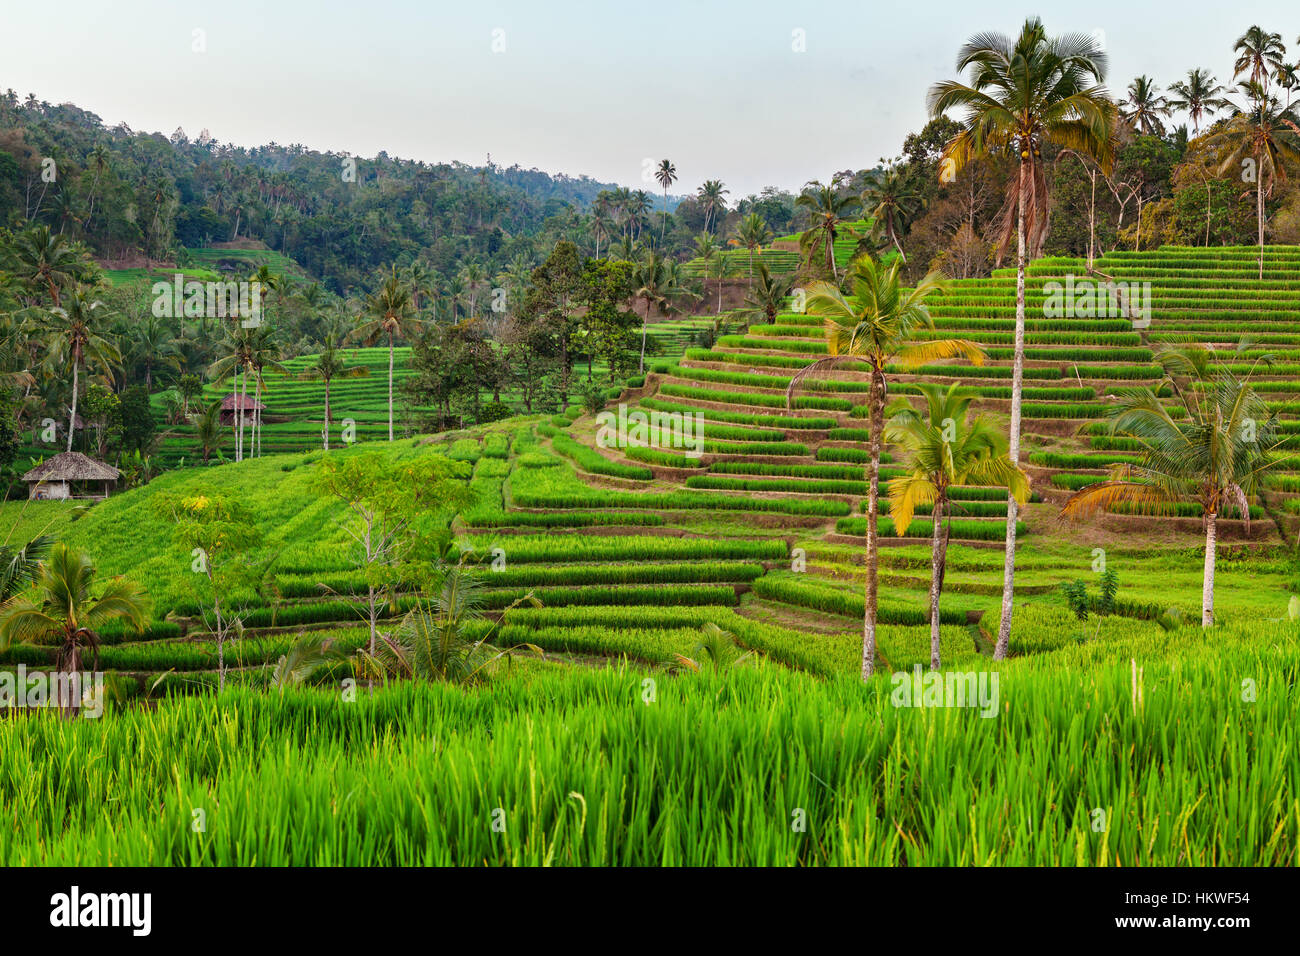 Beautiful view of green rice growing on field terraces. Asian backgrounds and  landscapes, people culture and nature - Stock Image